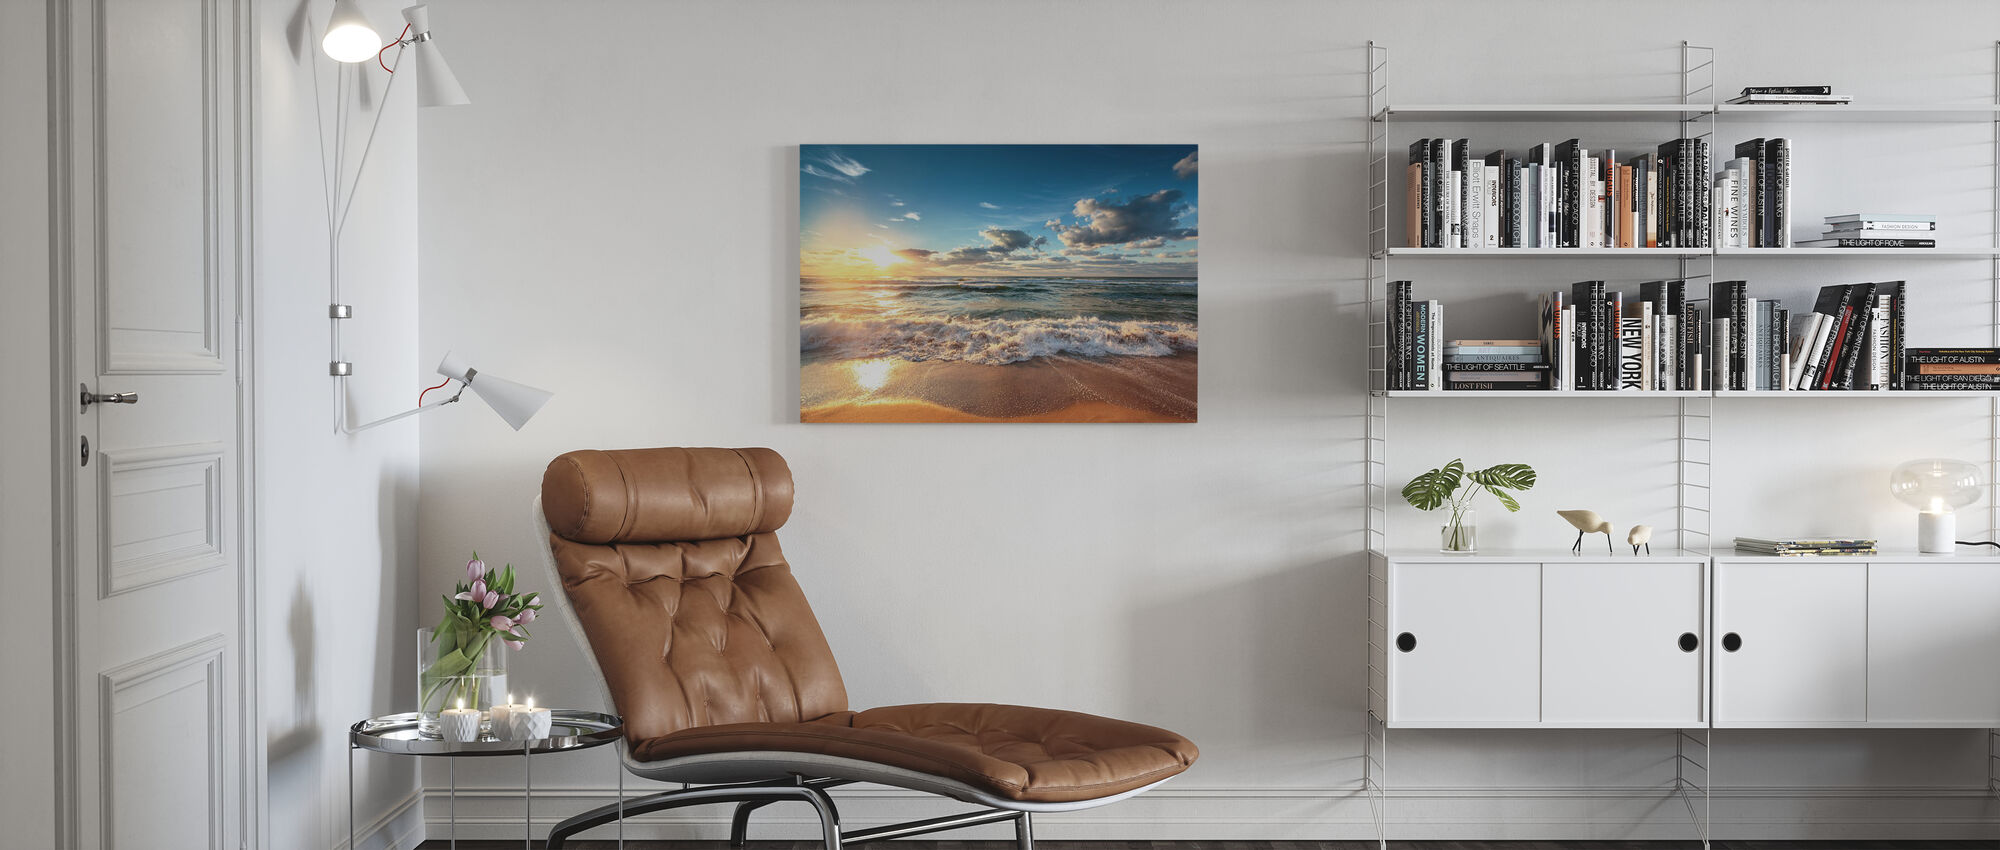 Cloudscape over the Sea - Canvas print - Living Room